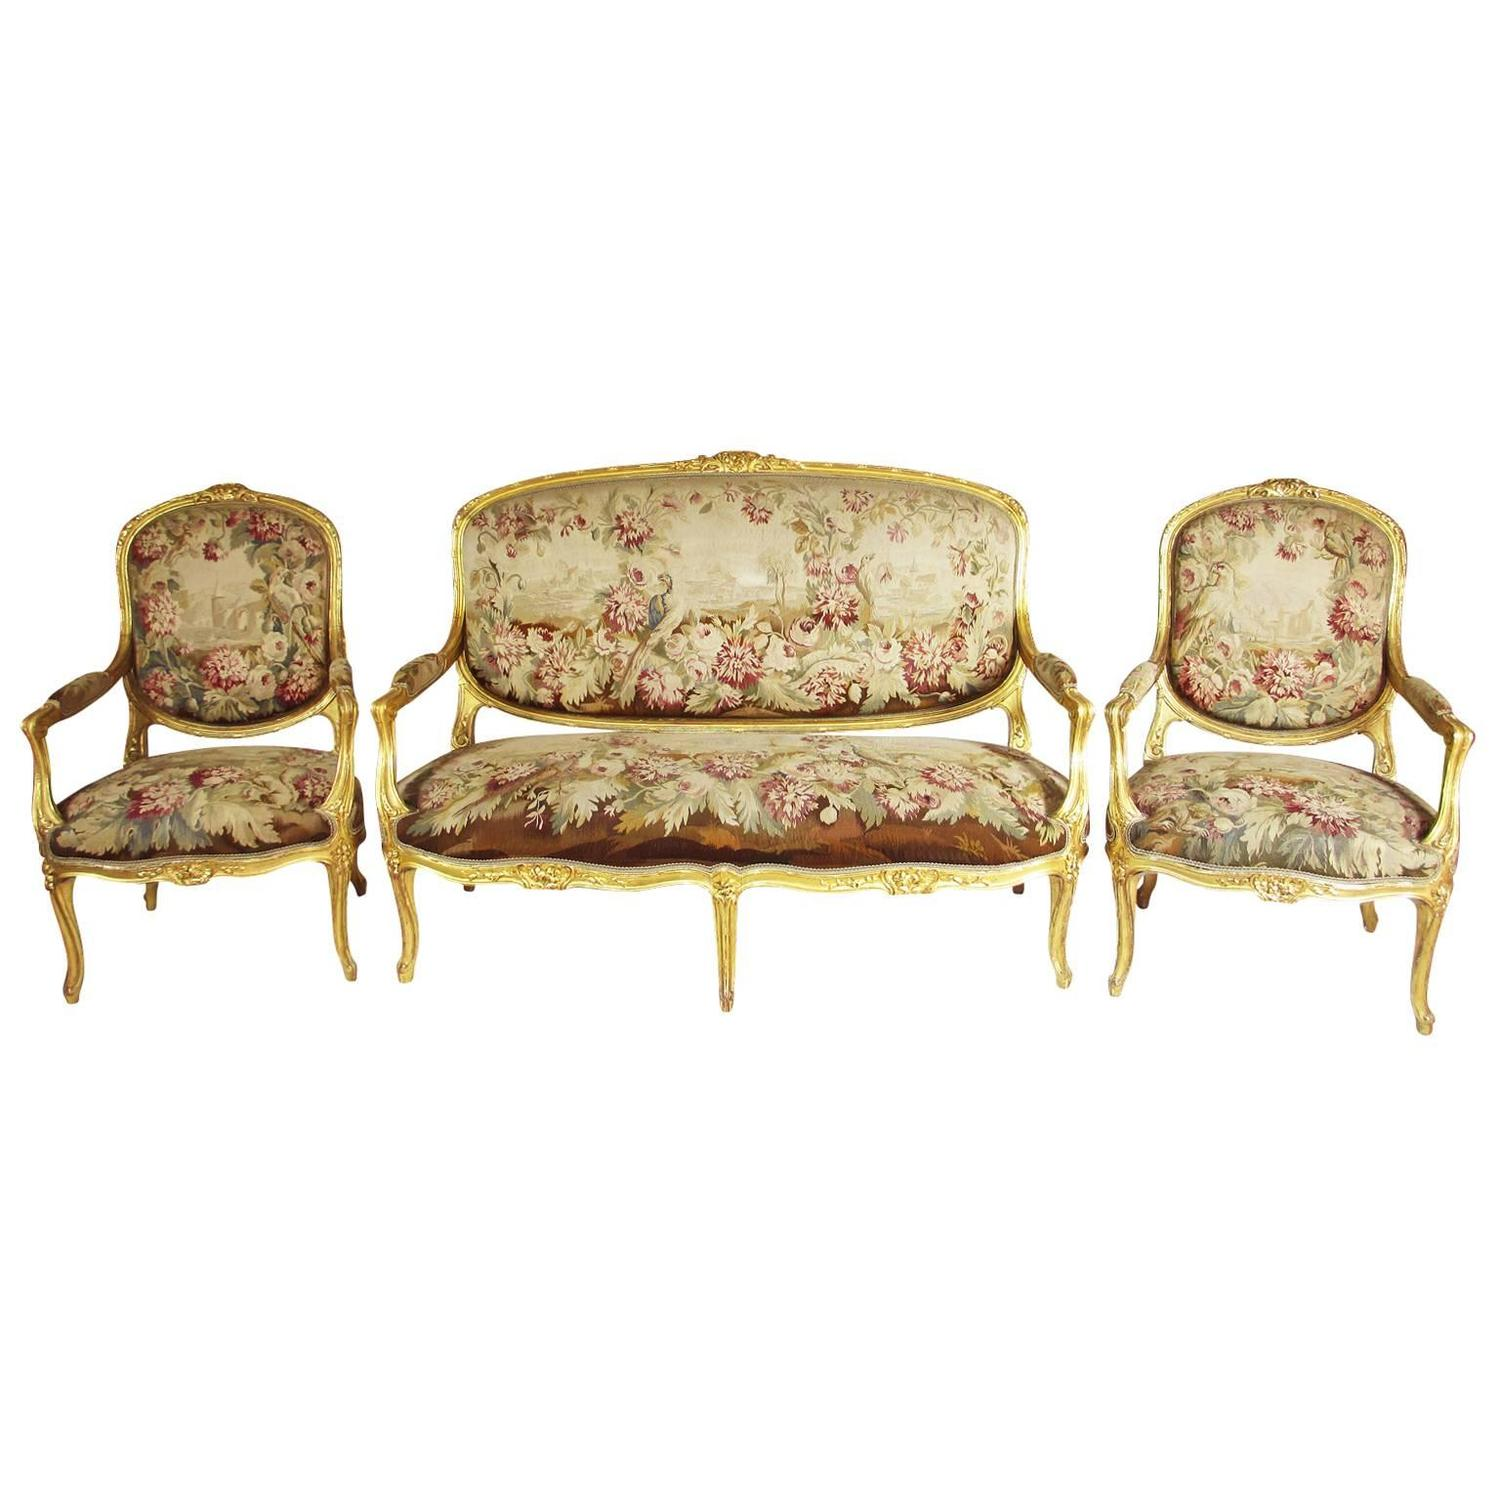 Louis XV Living Room Sets - 22 For Sale at 1stdibs